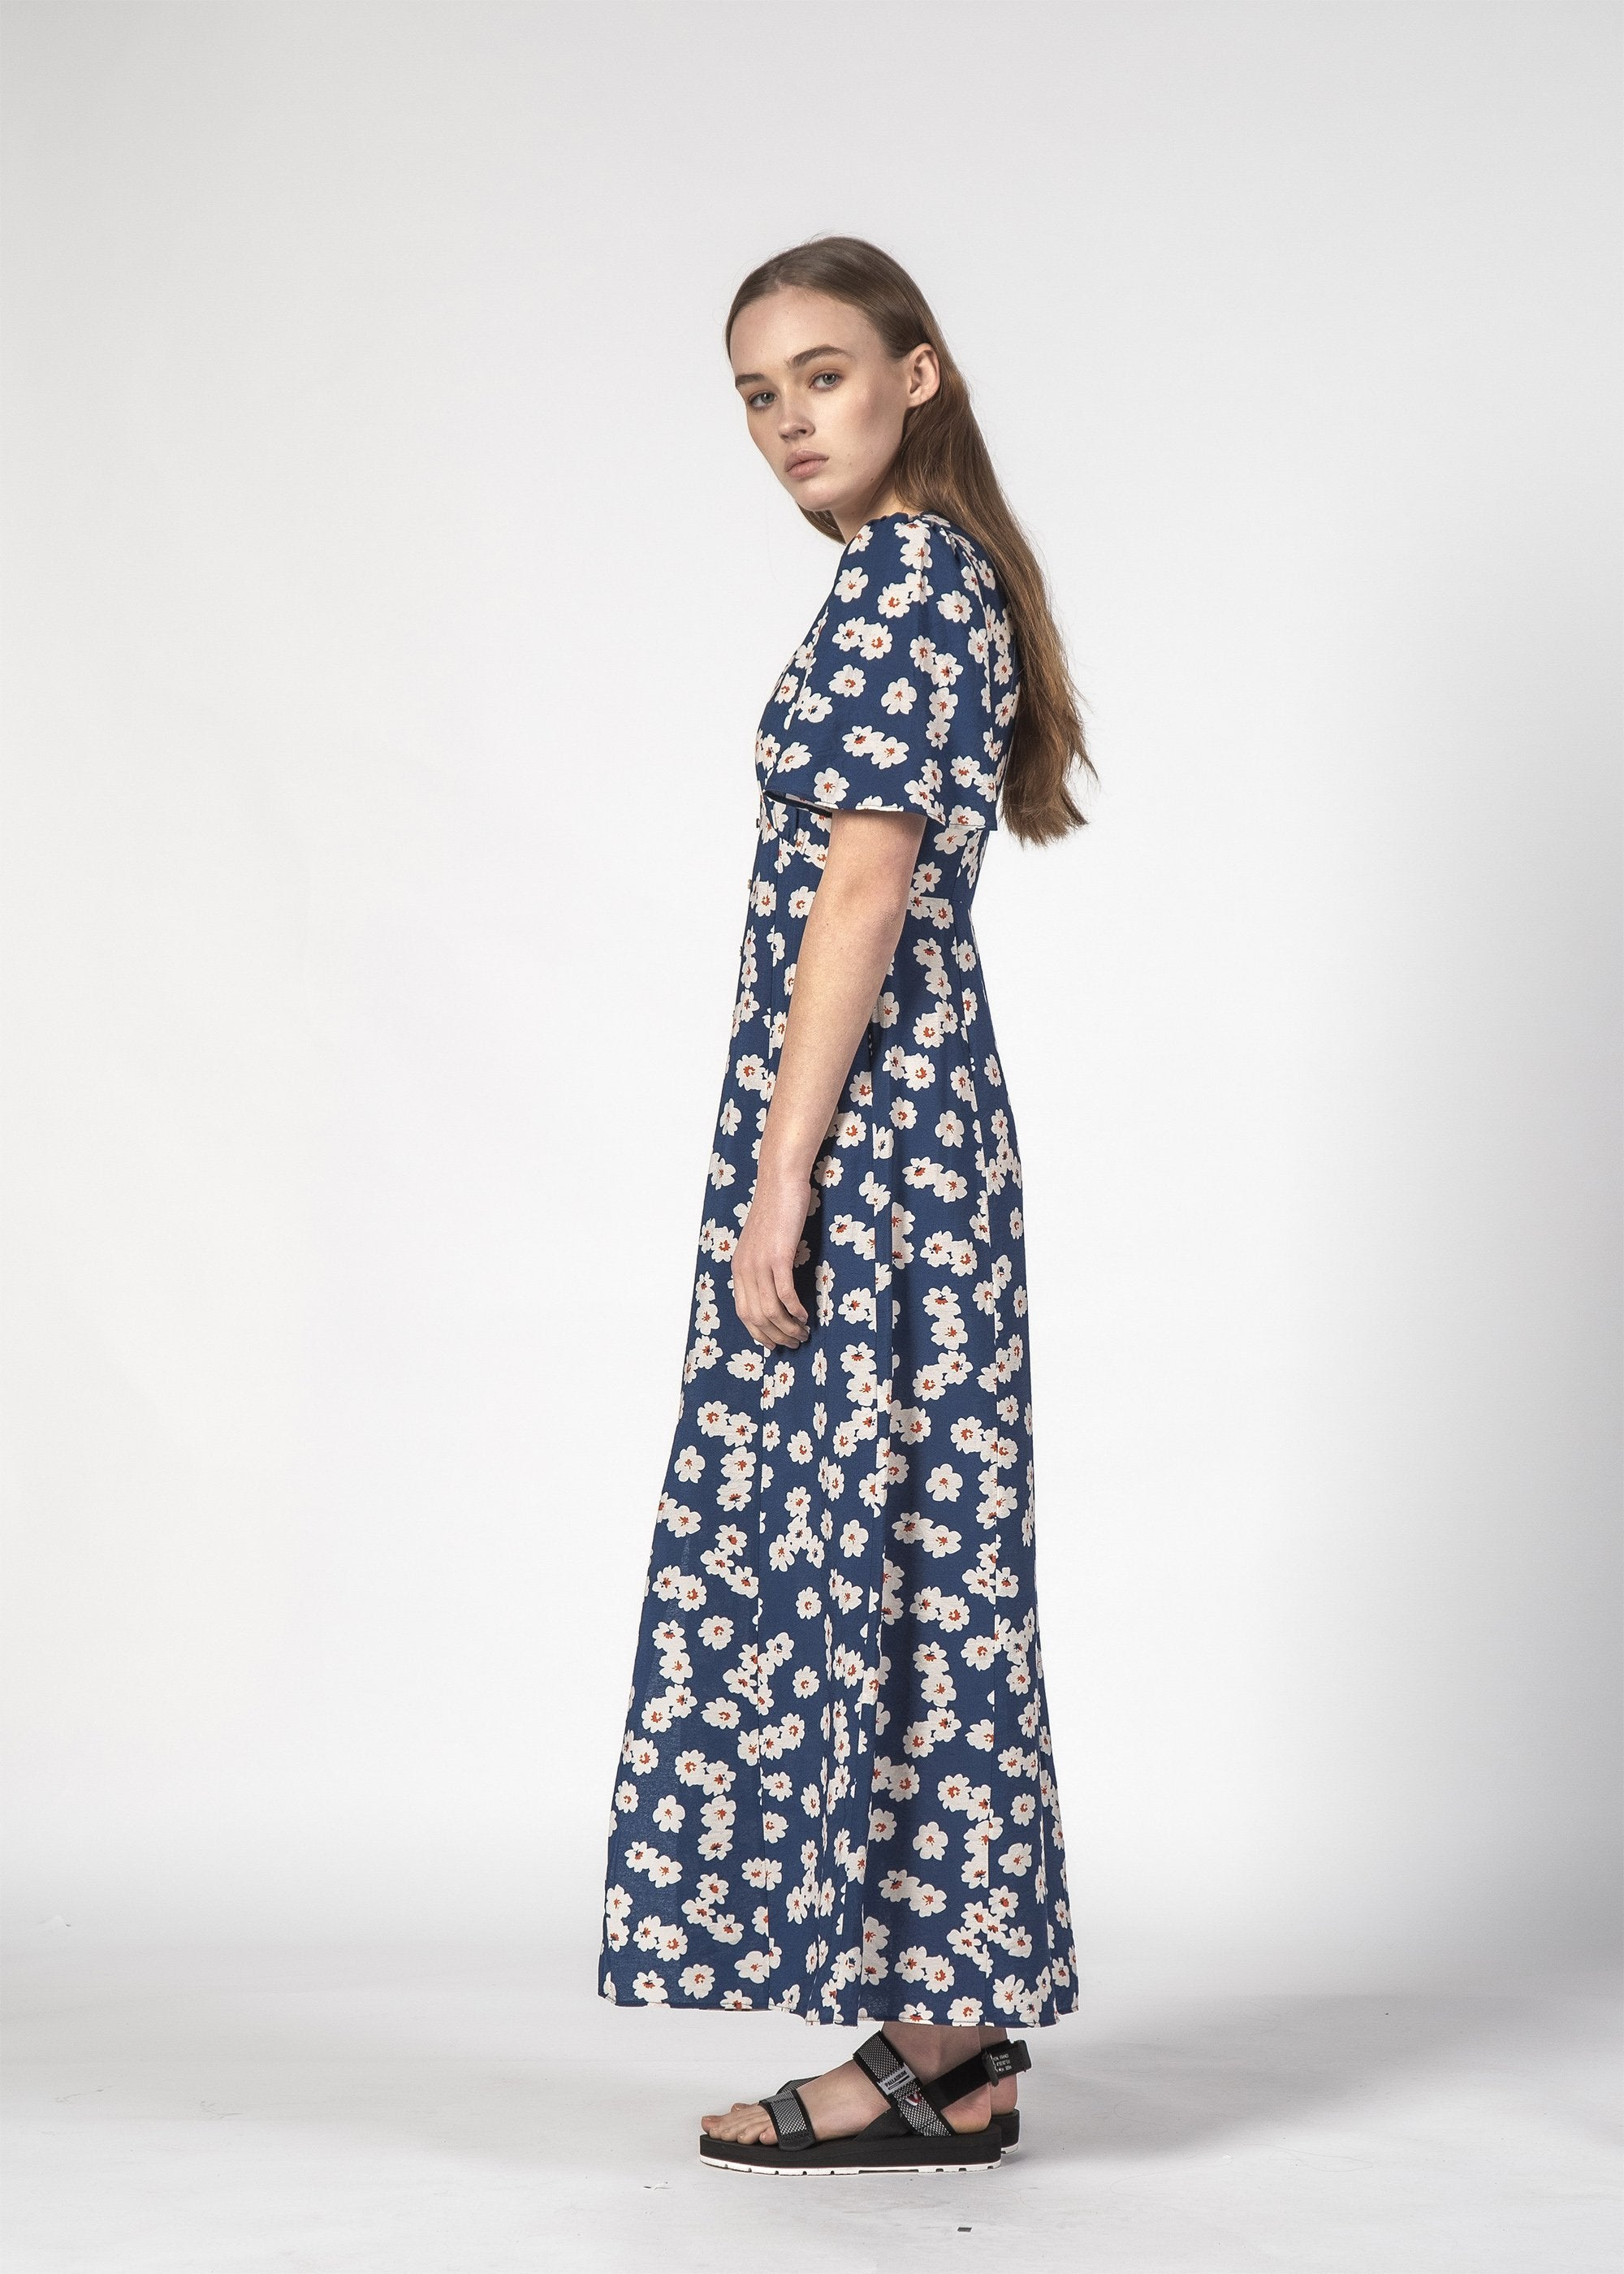 SALE - LYDS DRESS - Navy Blooom